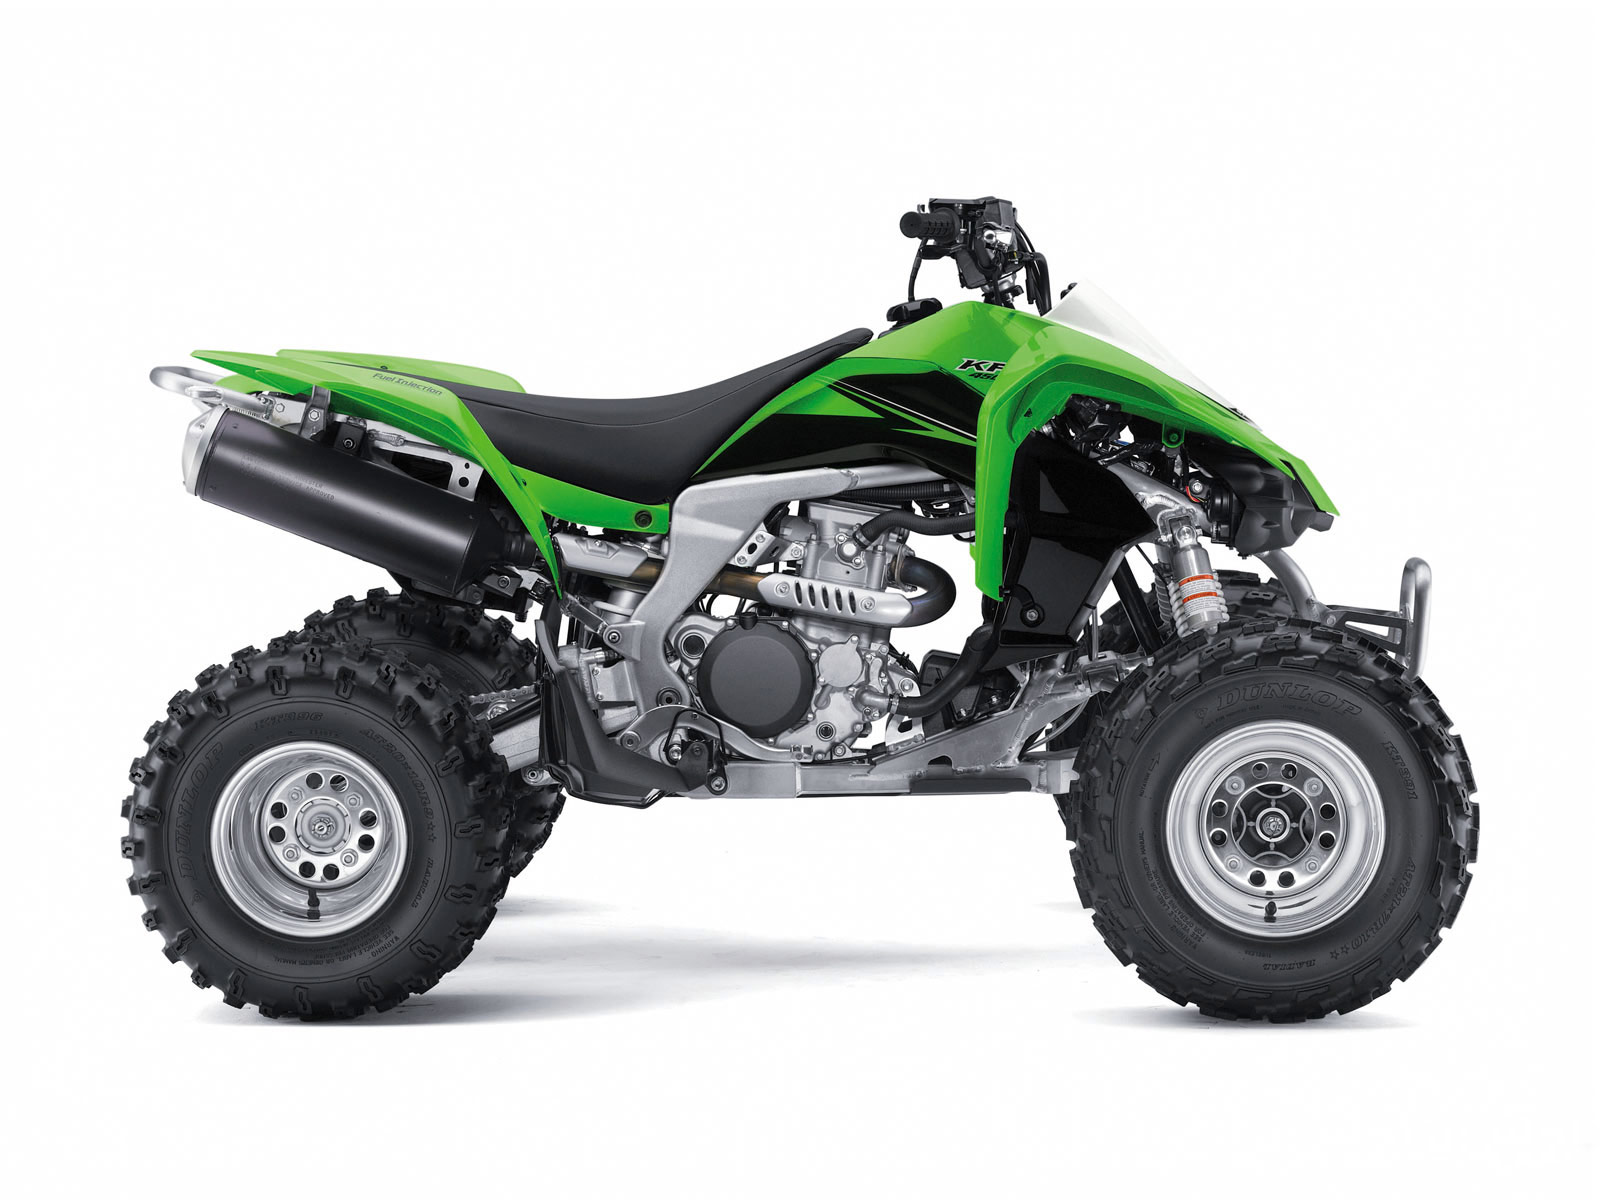 hight resolution of kawasaki accident lawyers 2010 kfx 450r pictures specs